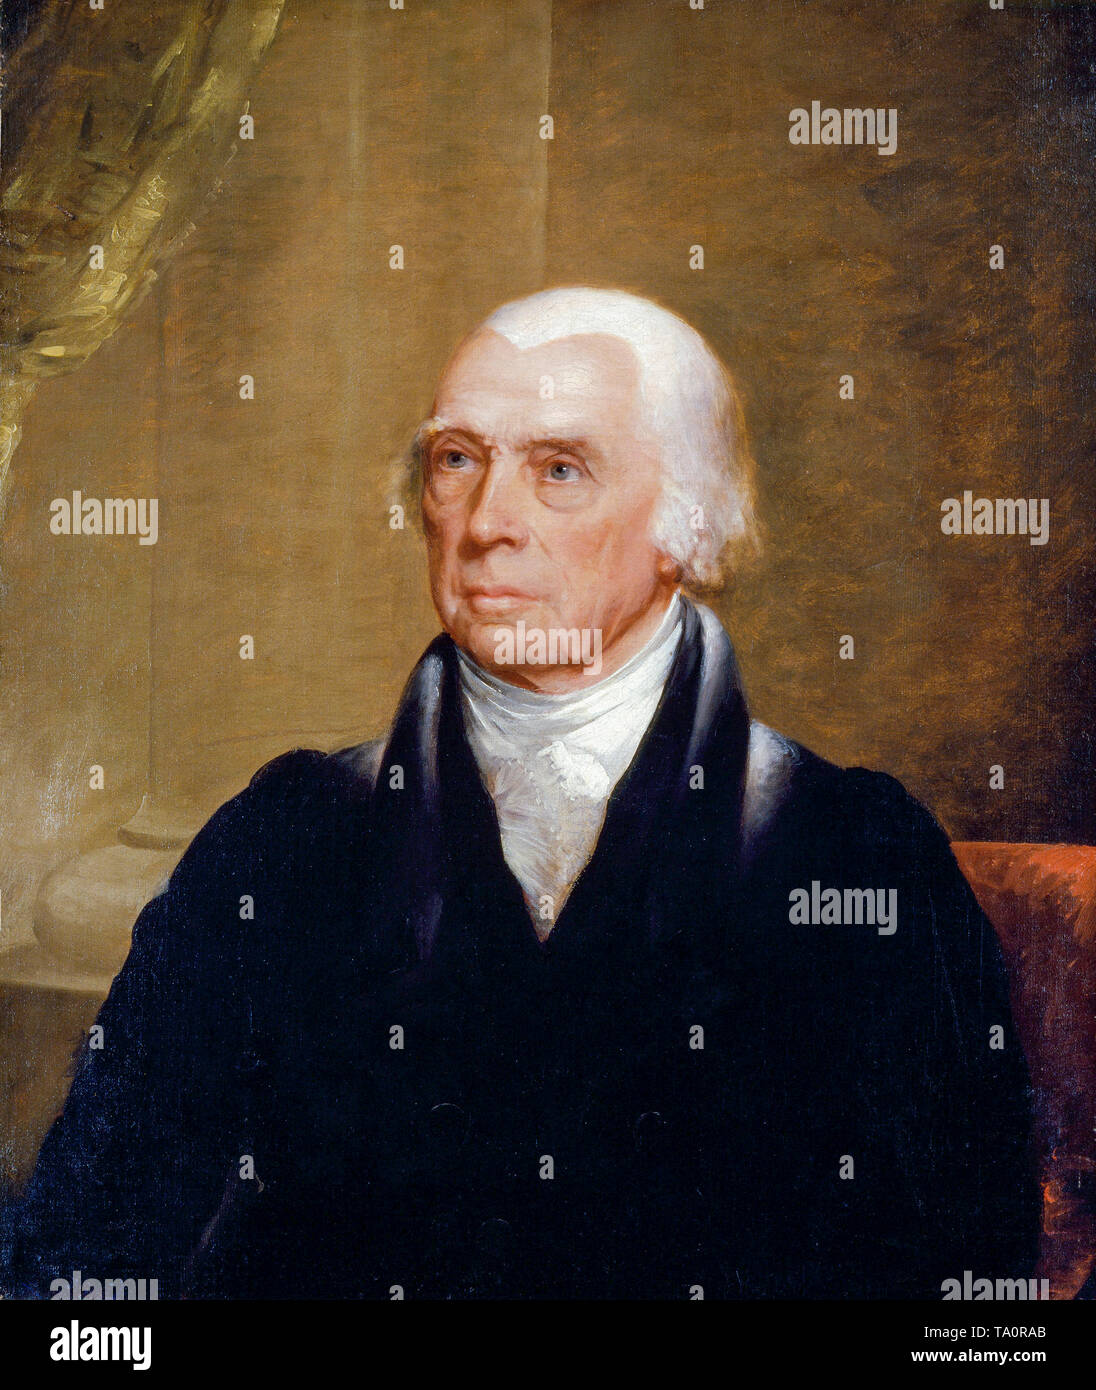 James Madison, portrait painting by Chester Harding c. 1829 - Stock Image